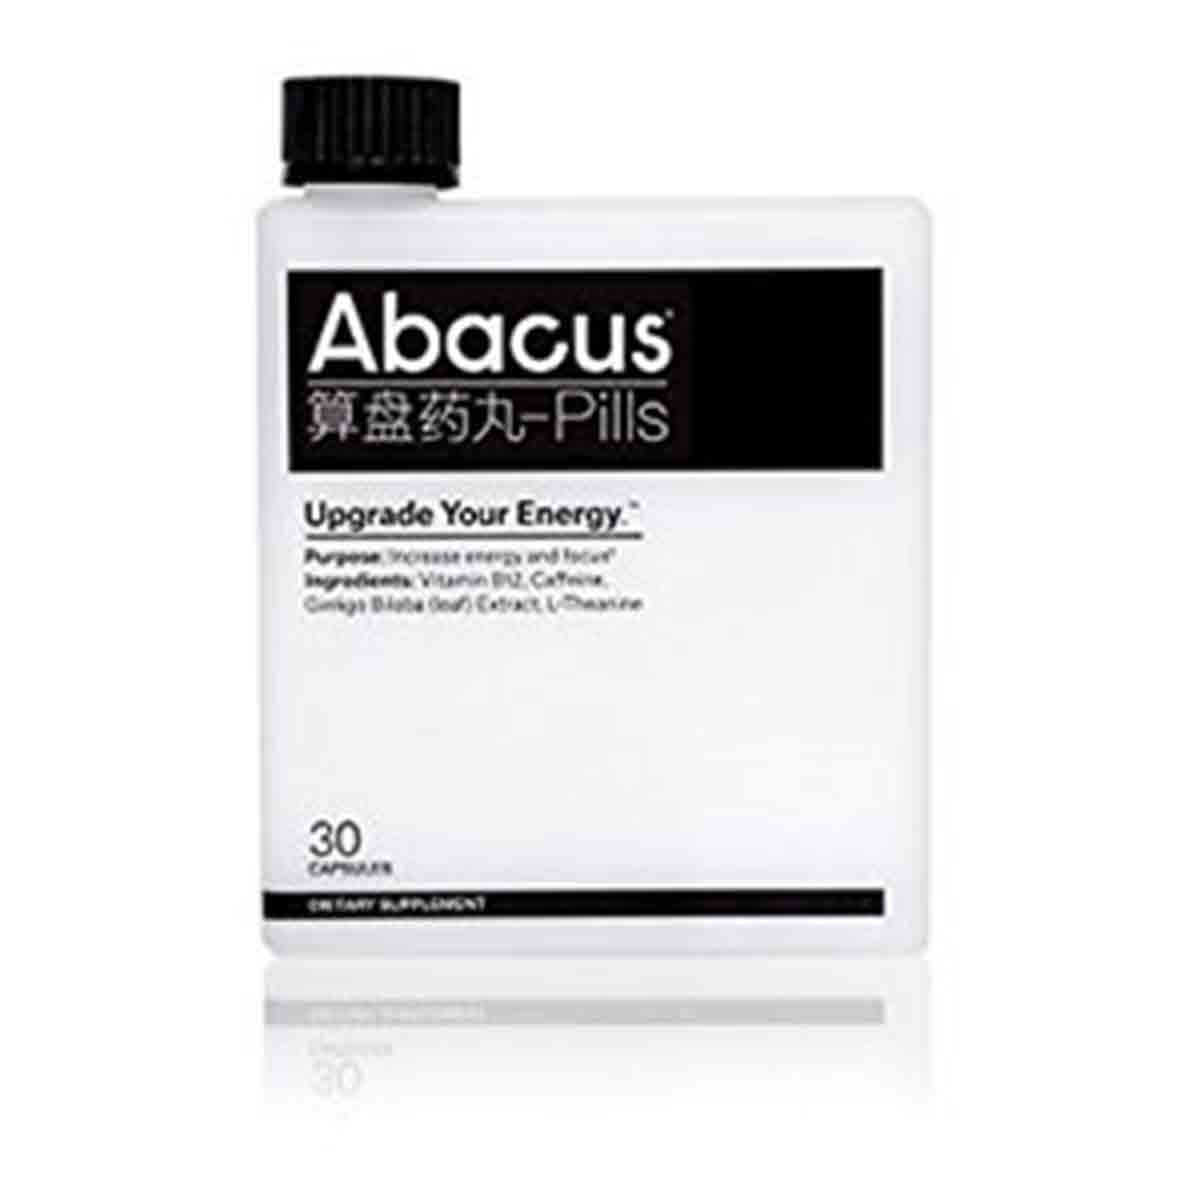 Abacus Energy Pills Review – 12 Facts You Need to Know